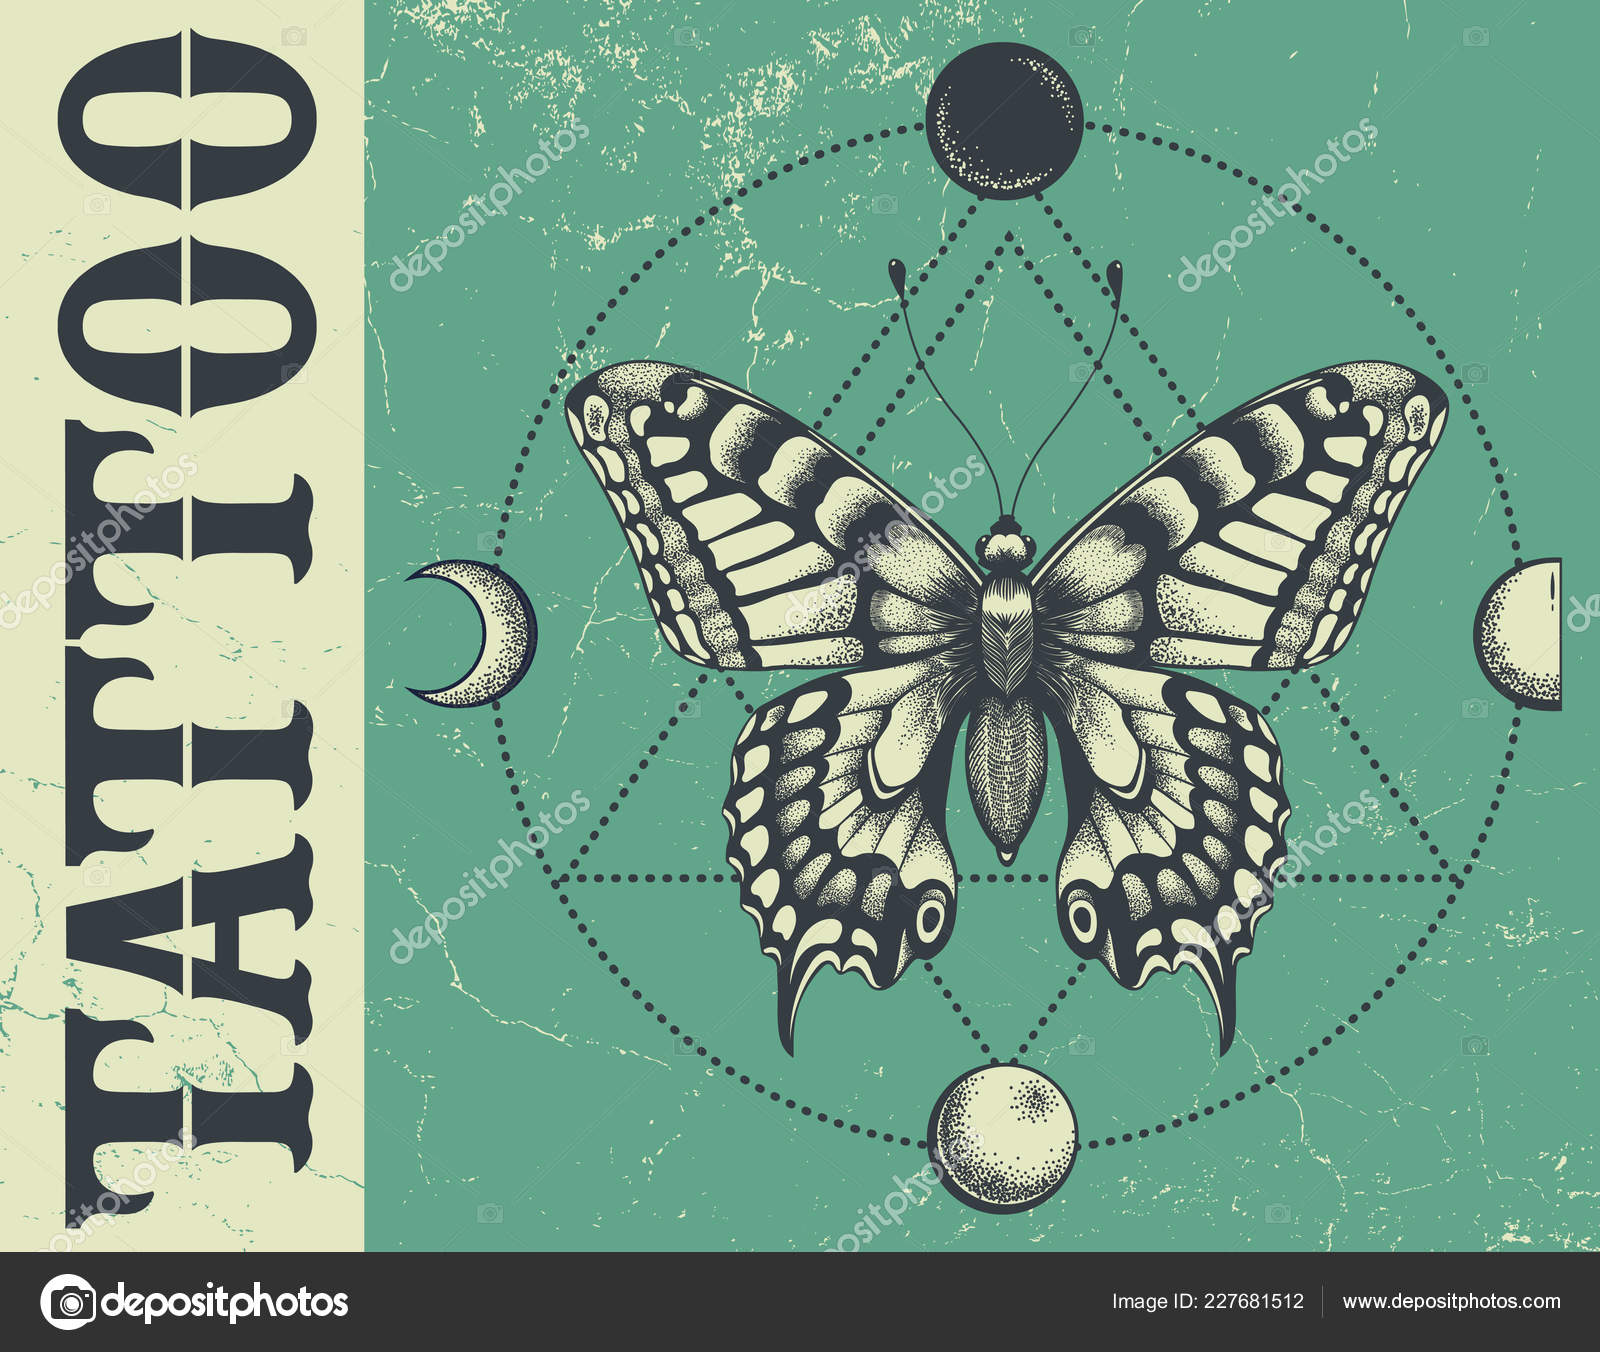 aa6176273 Banner for tattoo school, studo, parlor. Illustation with butterfly,  triangle geometry, moon phases. Grunge vector banner — Vector by natalypaint